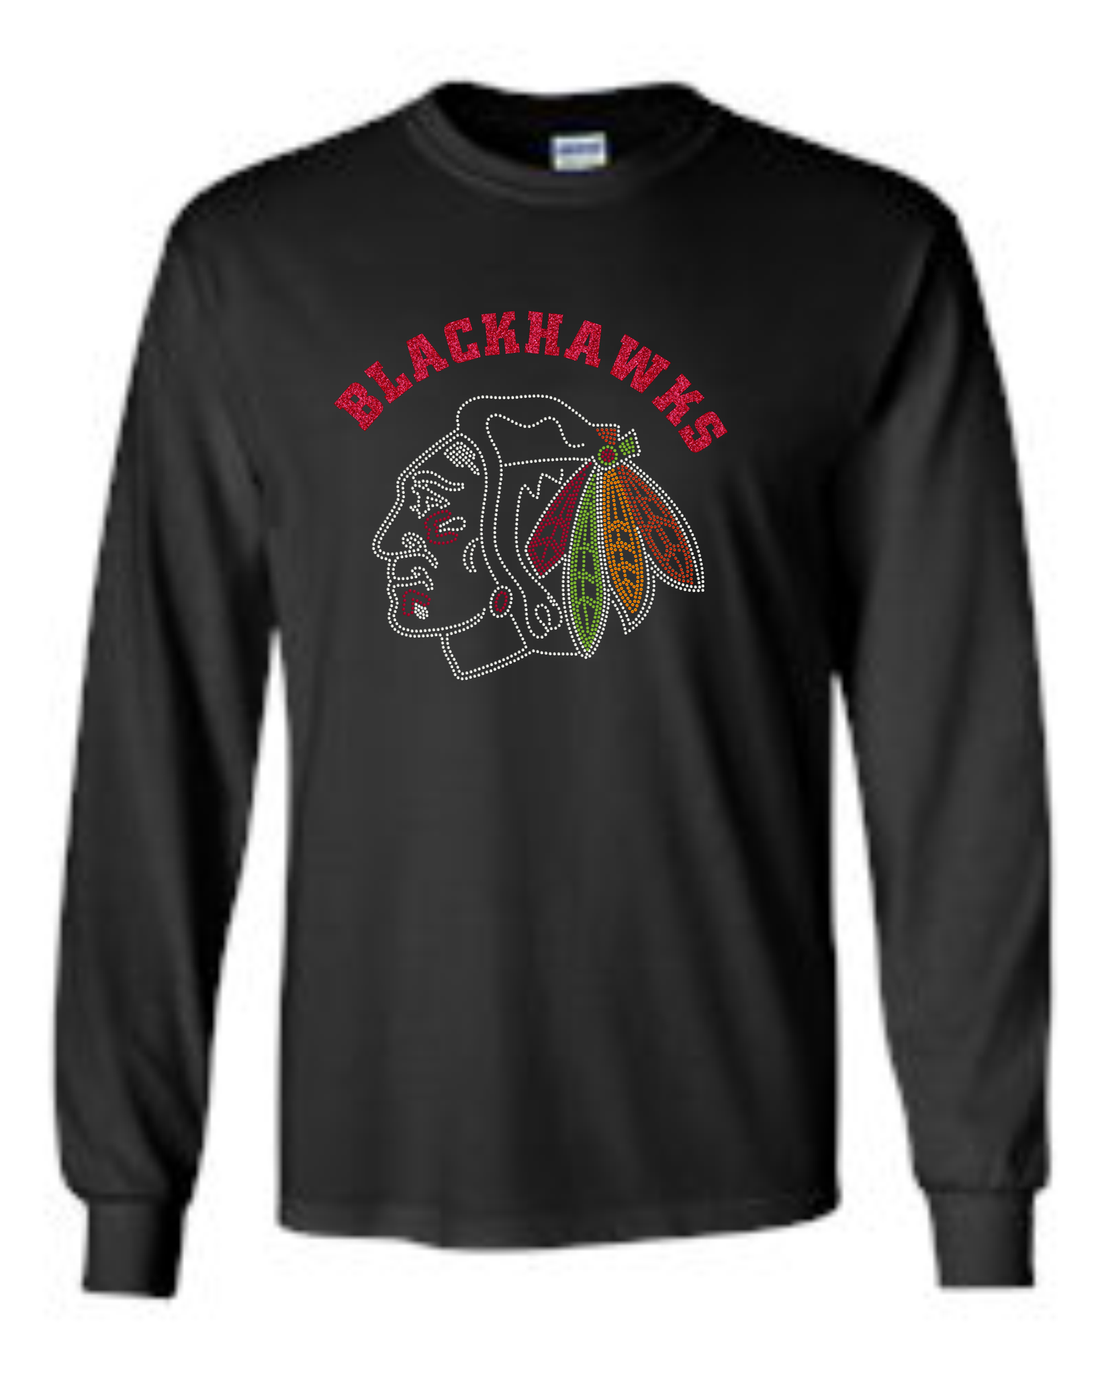 BLACKHAWKS RHINESTONE T-SHIRTS